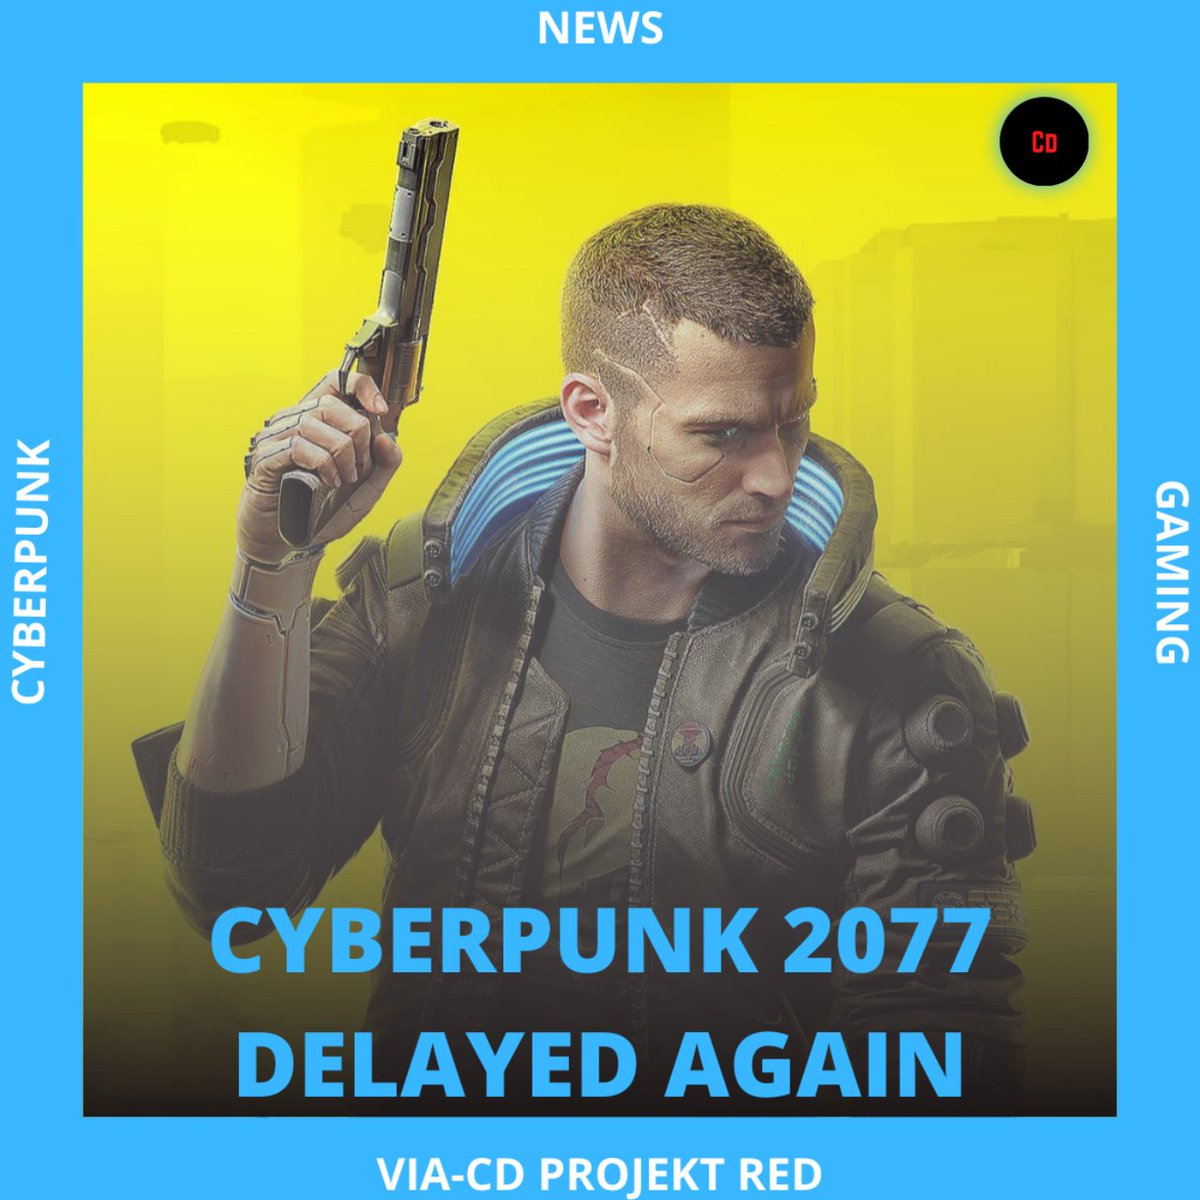 Cyberpunk 2077 delayed to December 10. @CDPROJEKTRED @CyberpunkGame @CP2077Countdown #Cyberpunk2077 #CDProjektRED #cyberpunk #gaming #gamingcommunity #GamingNews #gamingpc #gaminglife https://t.co/q0VX9Vayrm